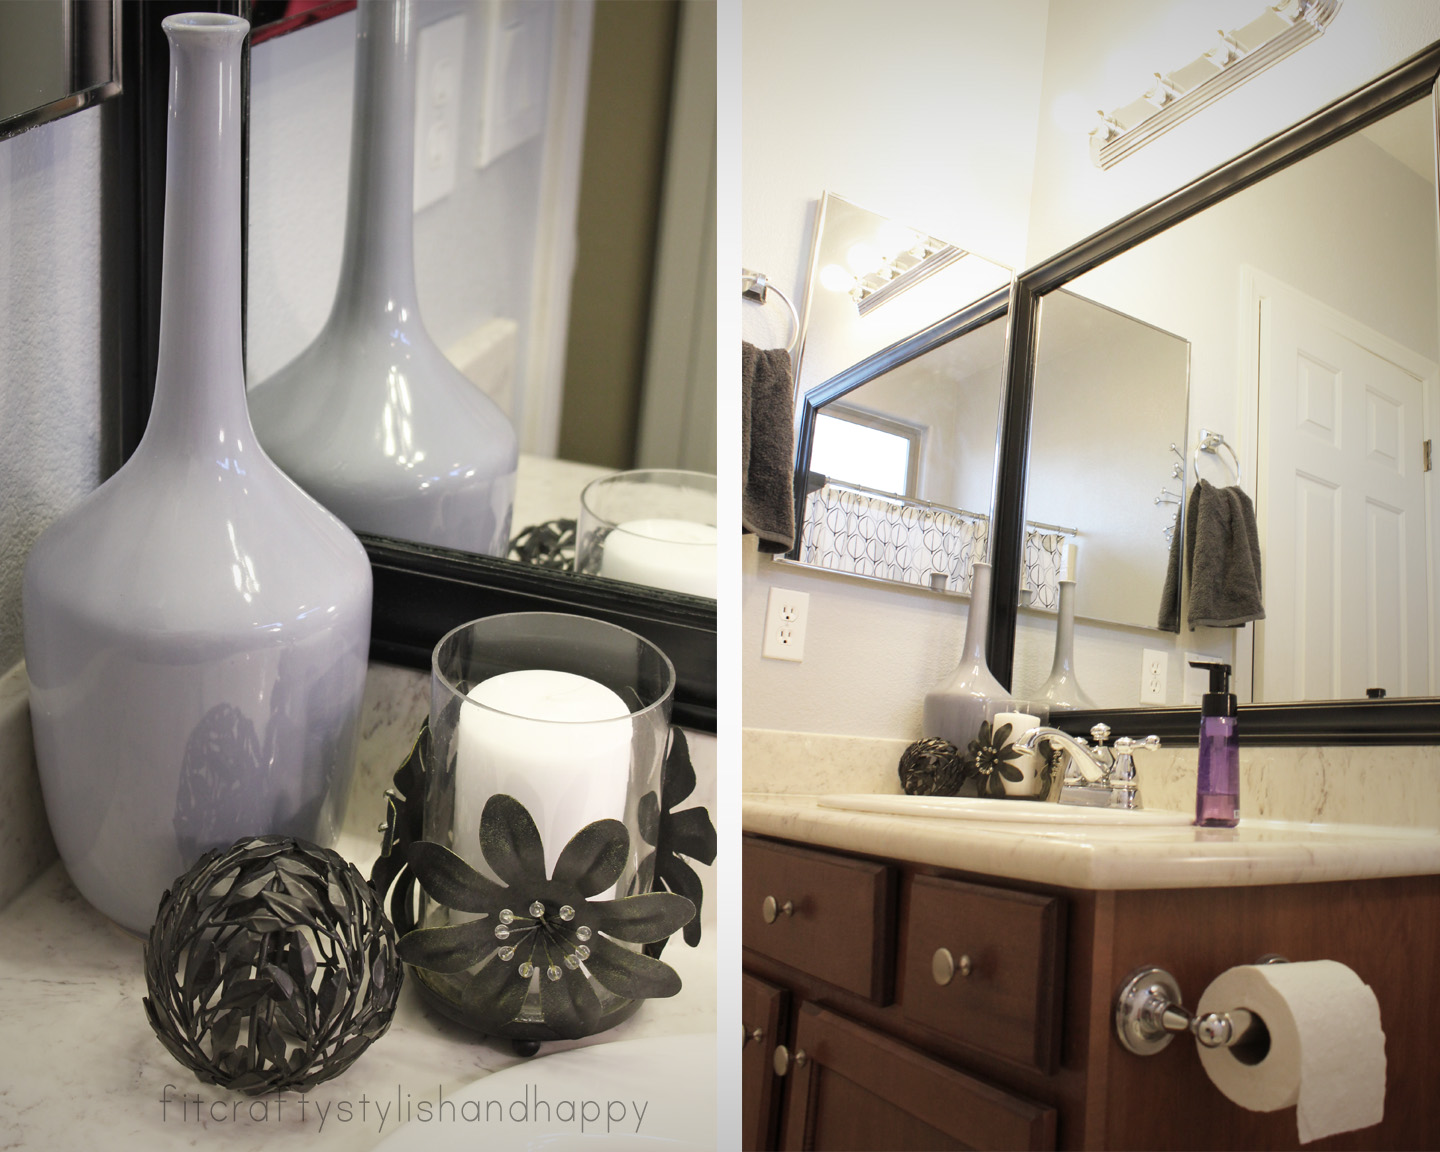 Http Fitcraftystylishandhappy Blogspot Com 2012 04 Guest Bathroom Makeover Html